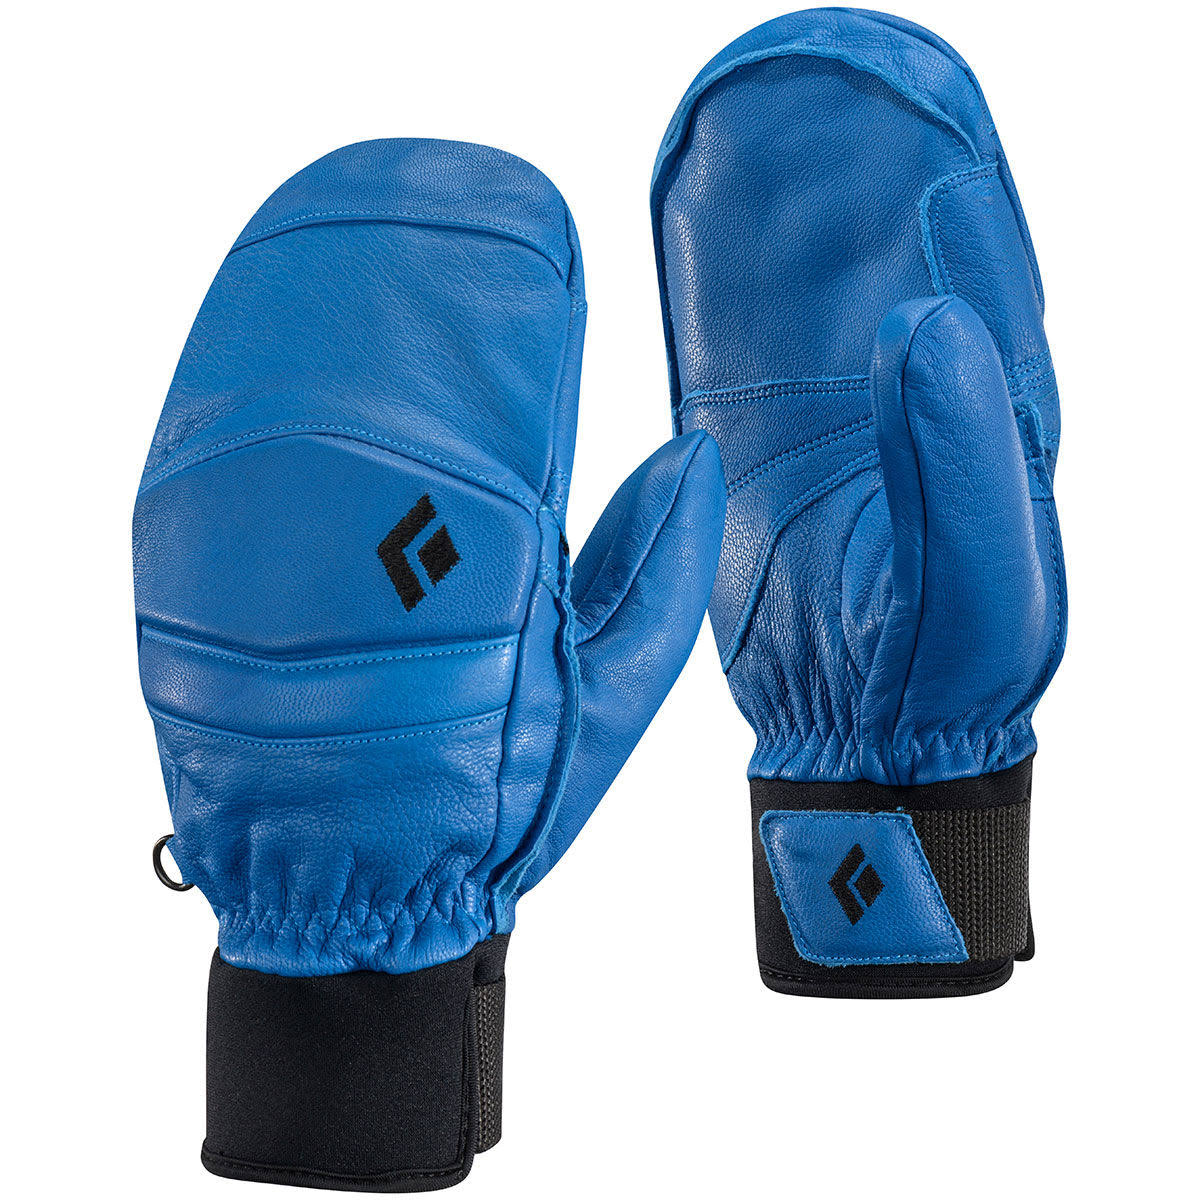 Black Diamond - Spark Mitts - X-Large - Ultra Blue